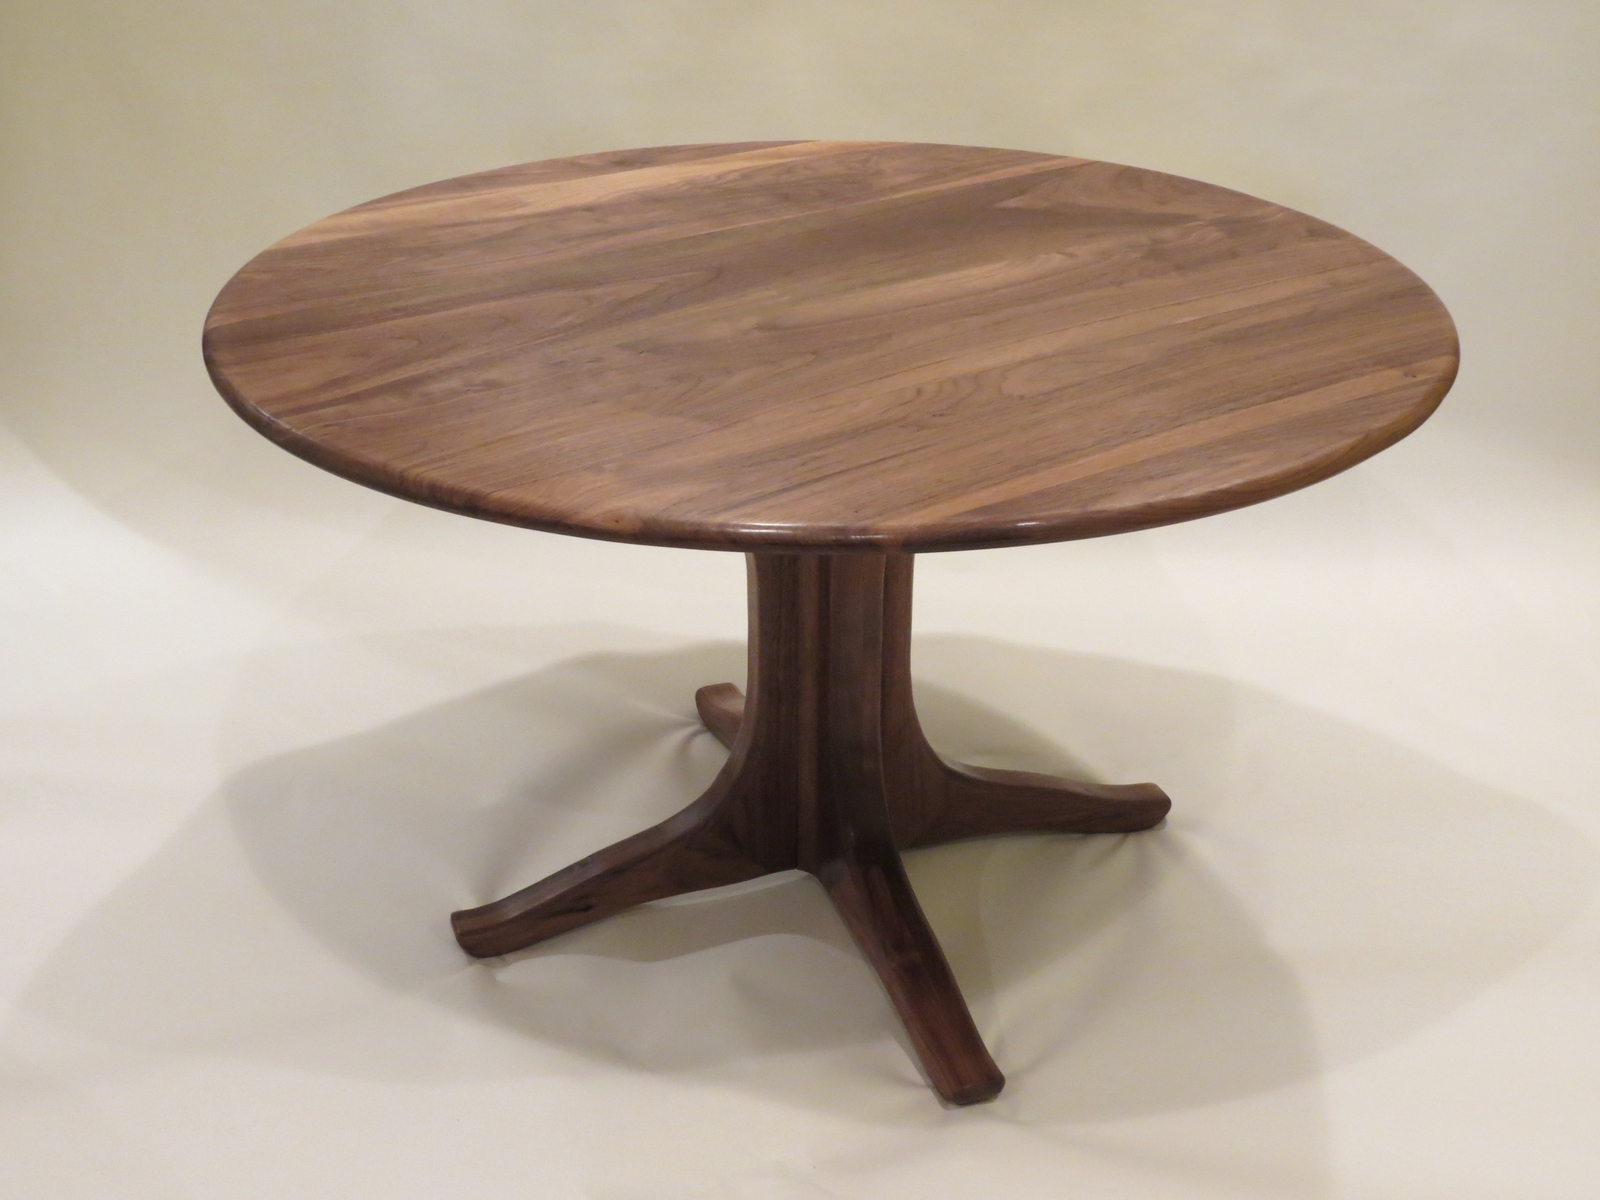 Awesome pedestal dining table and chair for dining room with round pedestal dining table